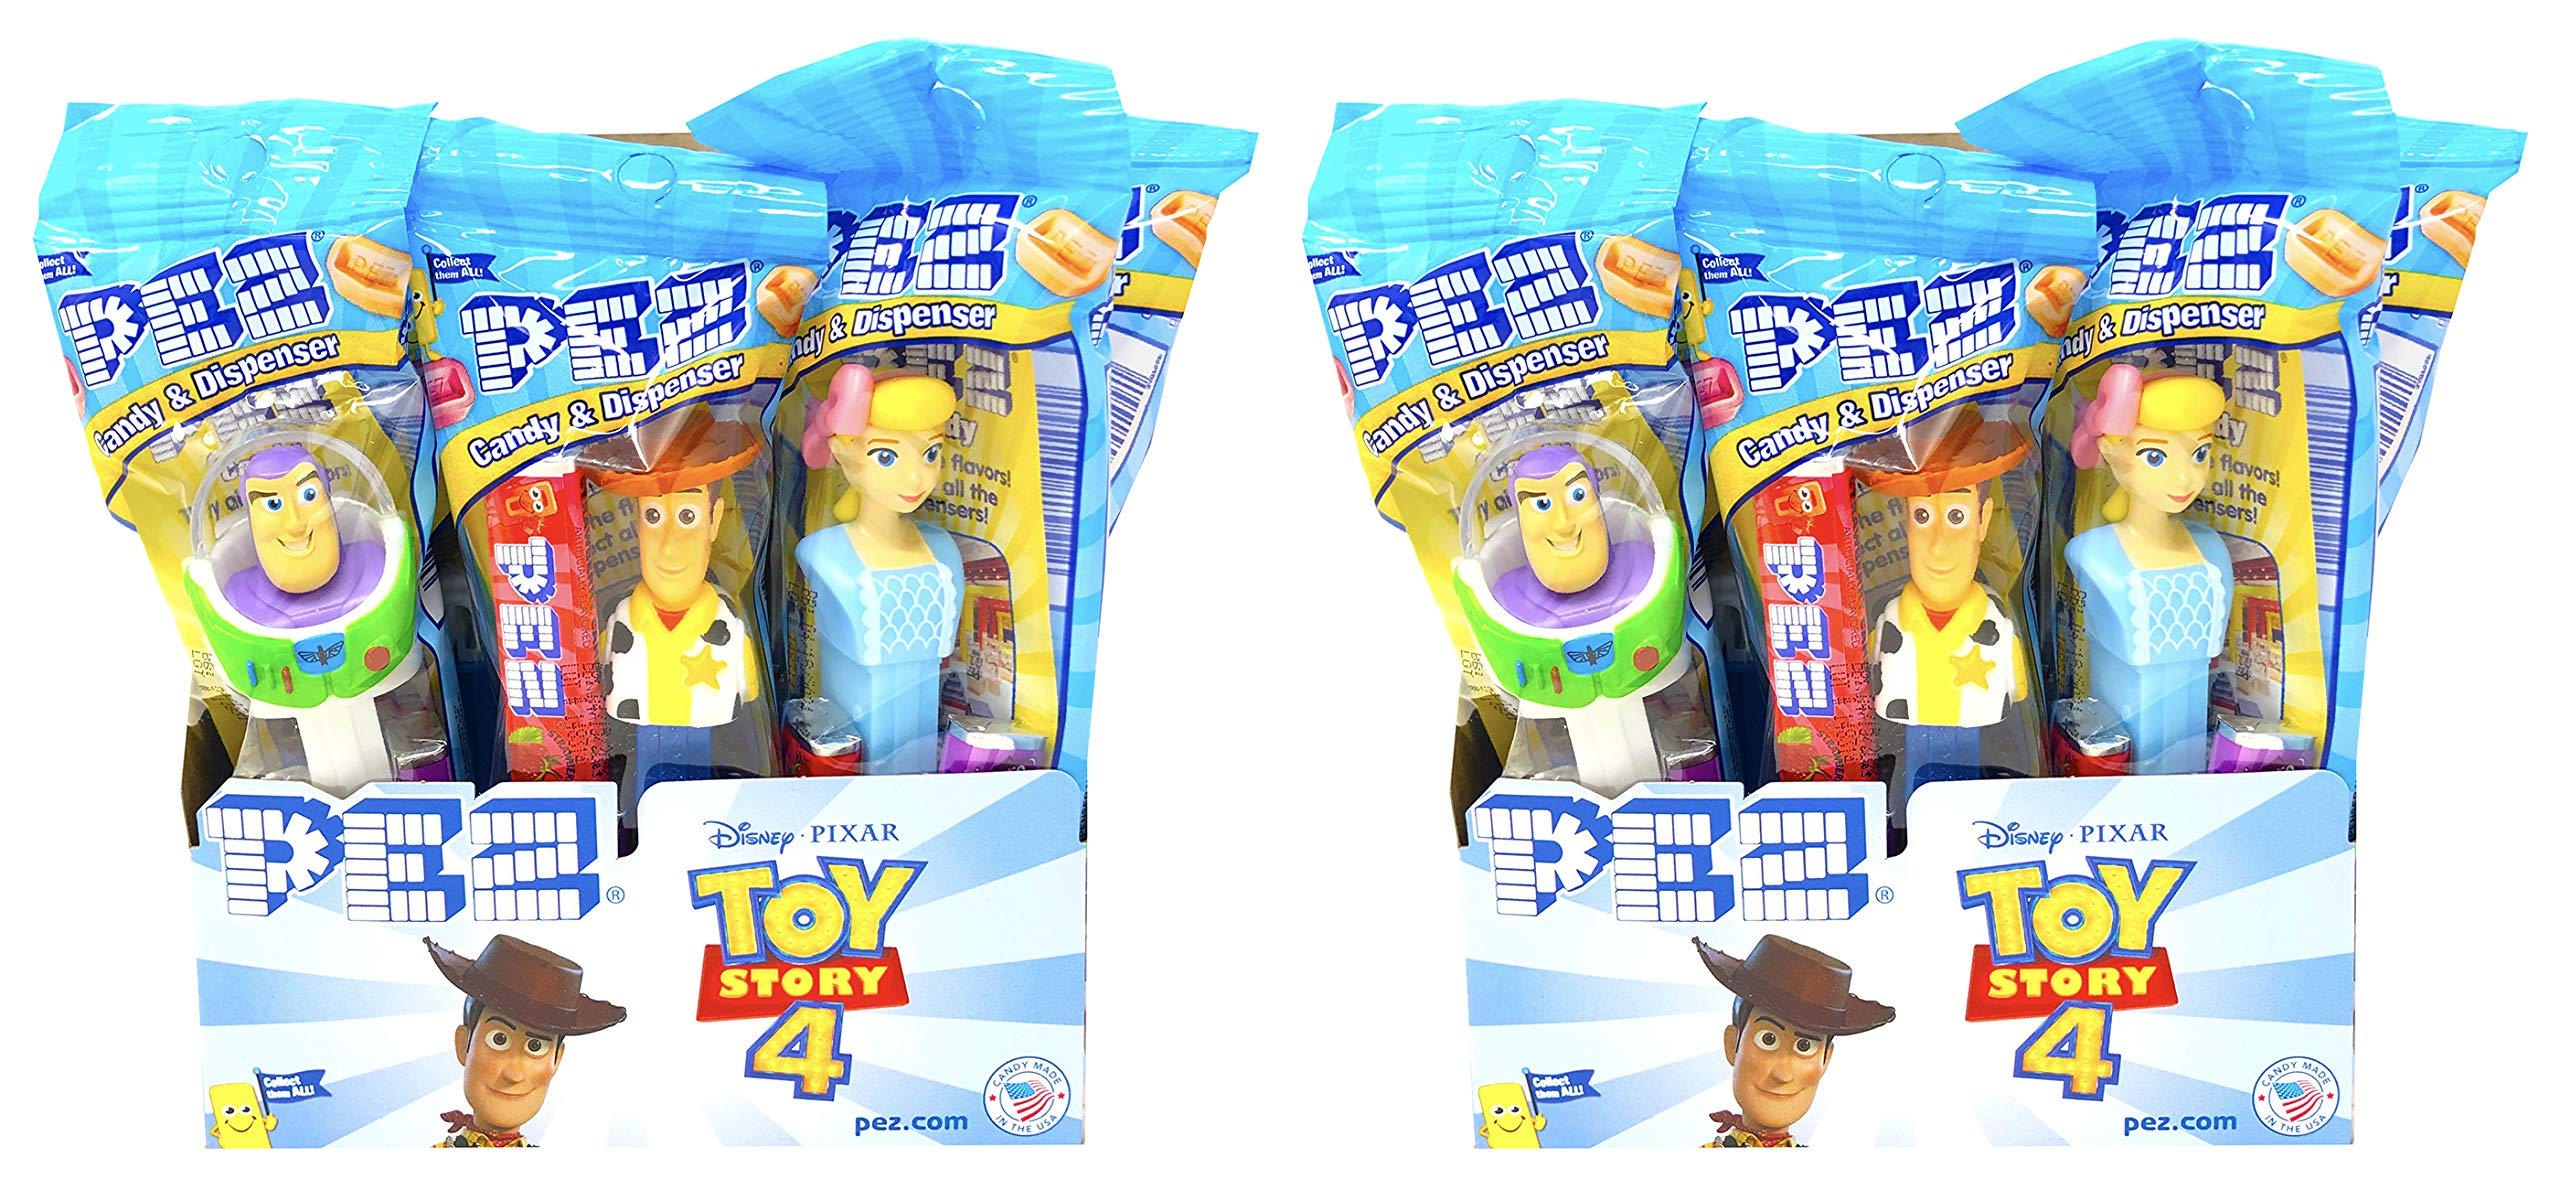 CDM product PEZ Toy Story 4 Candy Dispensers Individually Wrapped PEZ Candy and Dispensers with Tru Inertia Kazoo 24 Pack big image